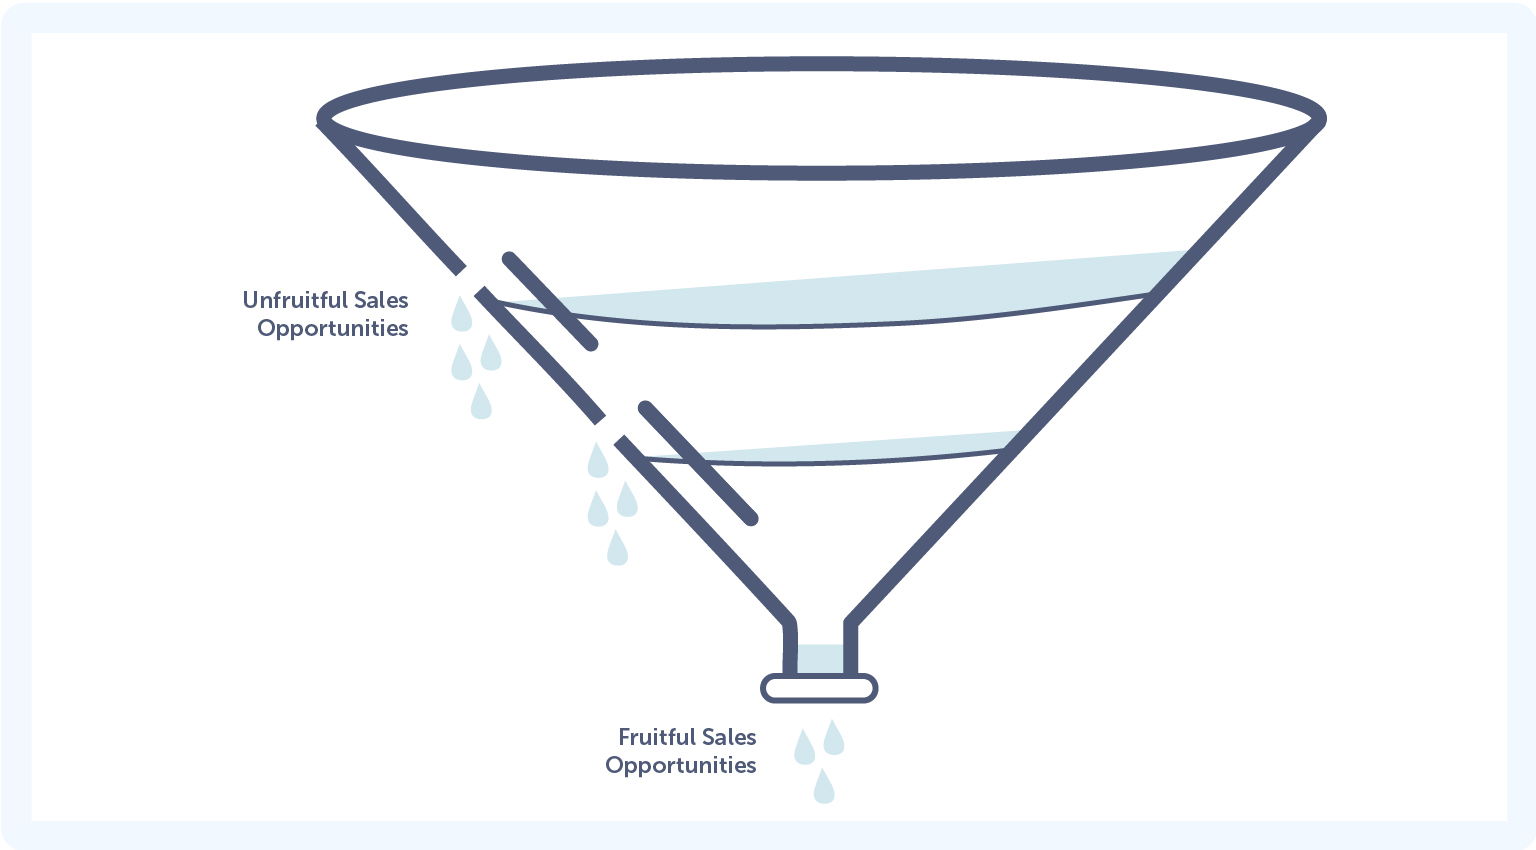 The Leaky Funnel